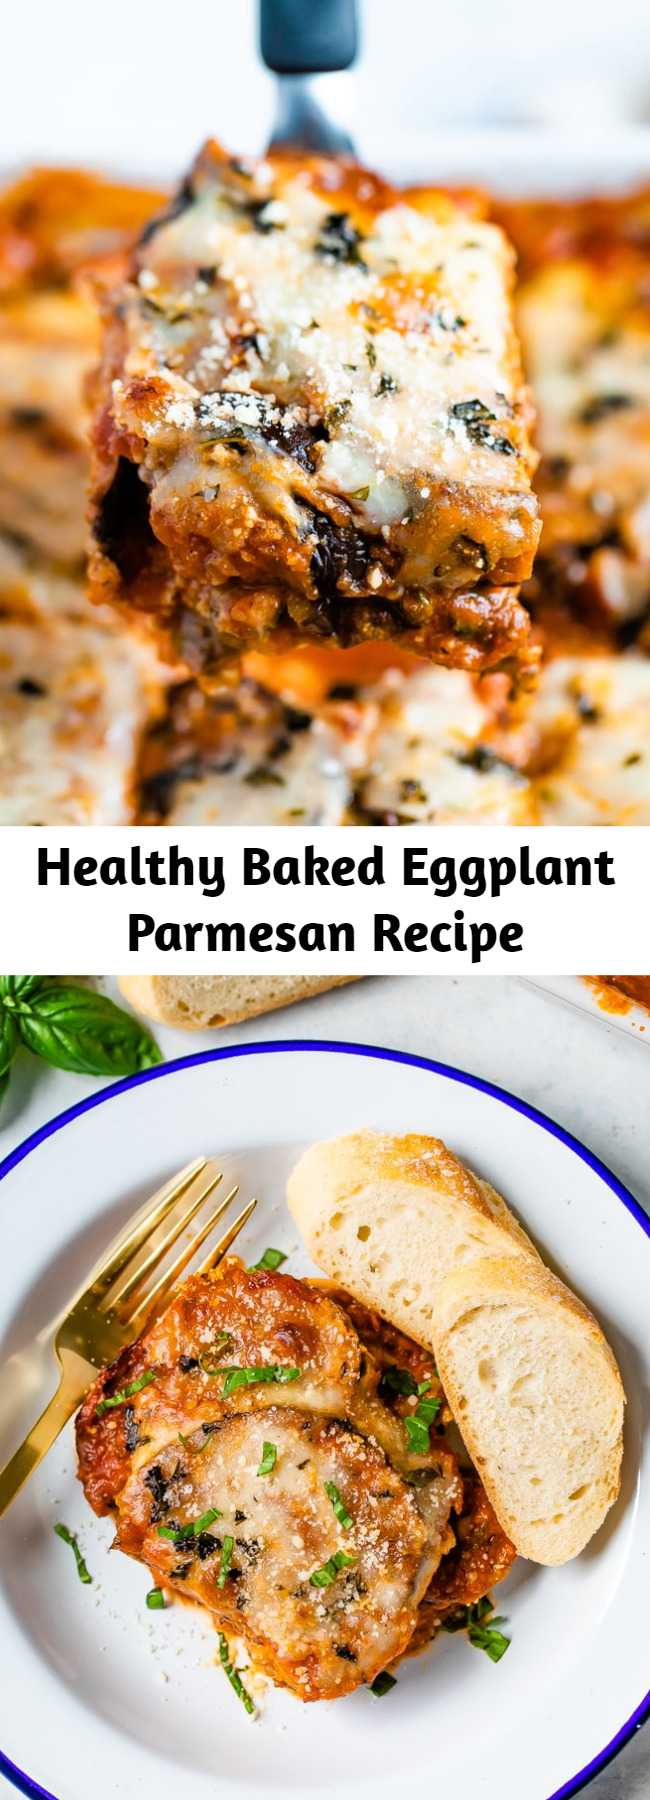 Healthy Baked Eggplant Parmesan Recipe - Make a healthy baked eggplant parmesan with crispy almond flour-coated eggplant slices that are baked — no frying or bread crumbs needed!